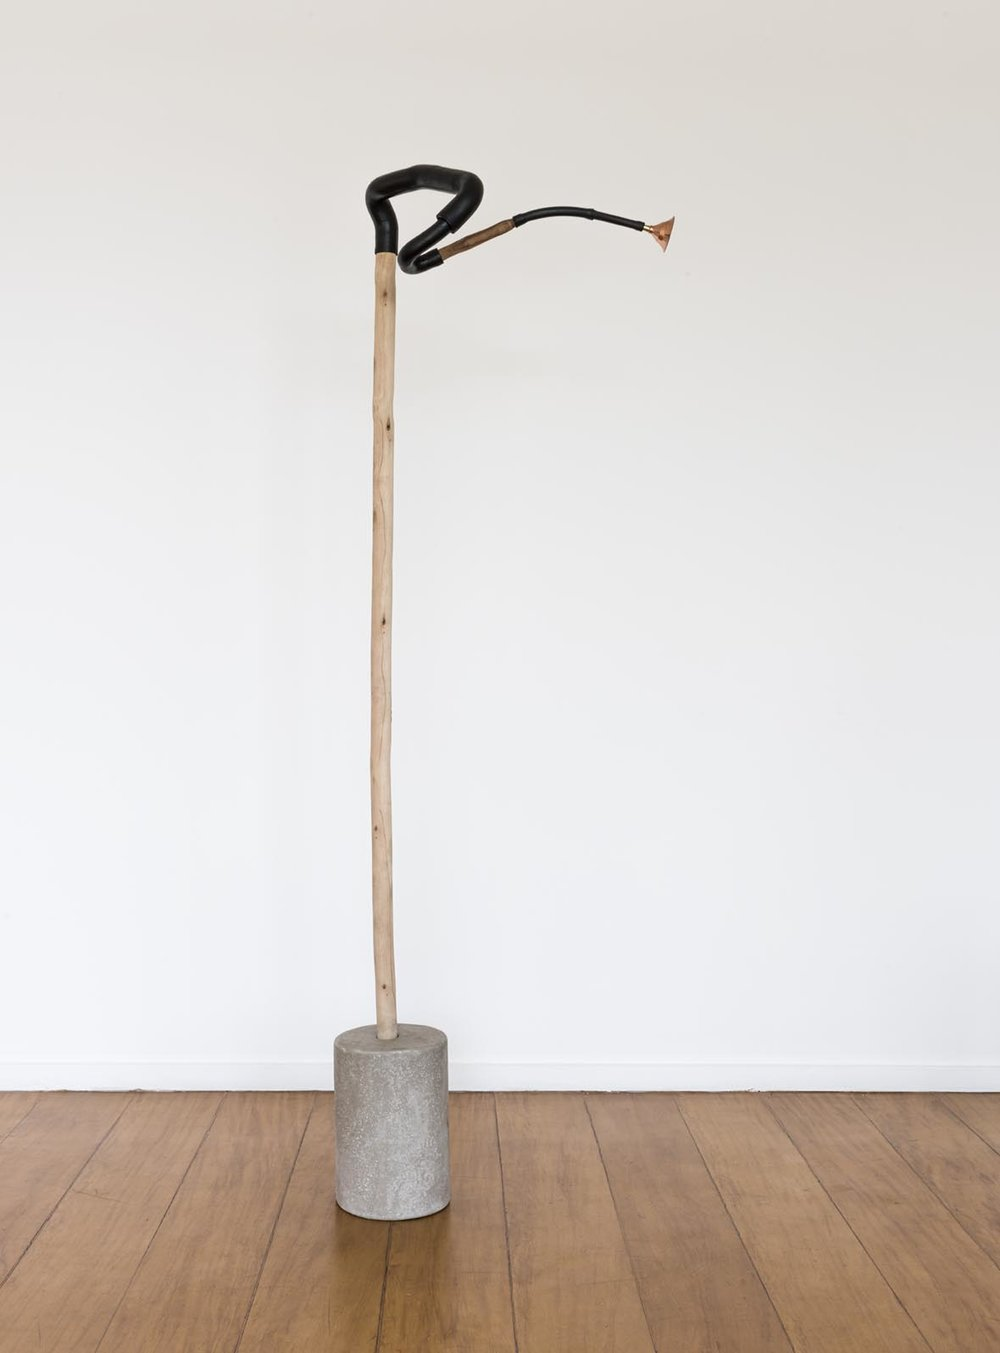 Claudio Cretti Sem título | Untitled, 2017 Cimento, madeira, borracha e madeira | Cement, wood, rubber and wood, 180 x 62 x 20 cm